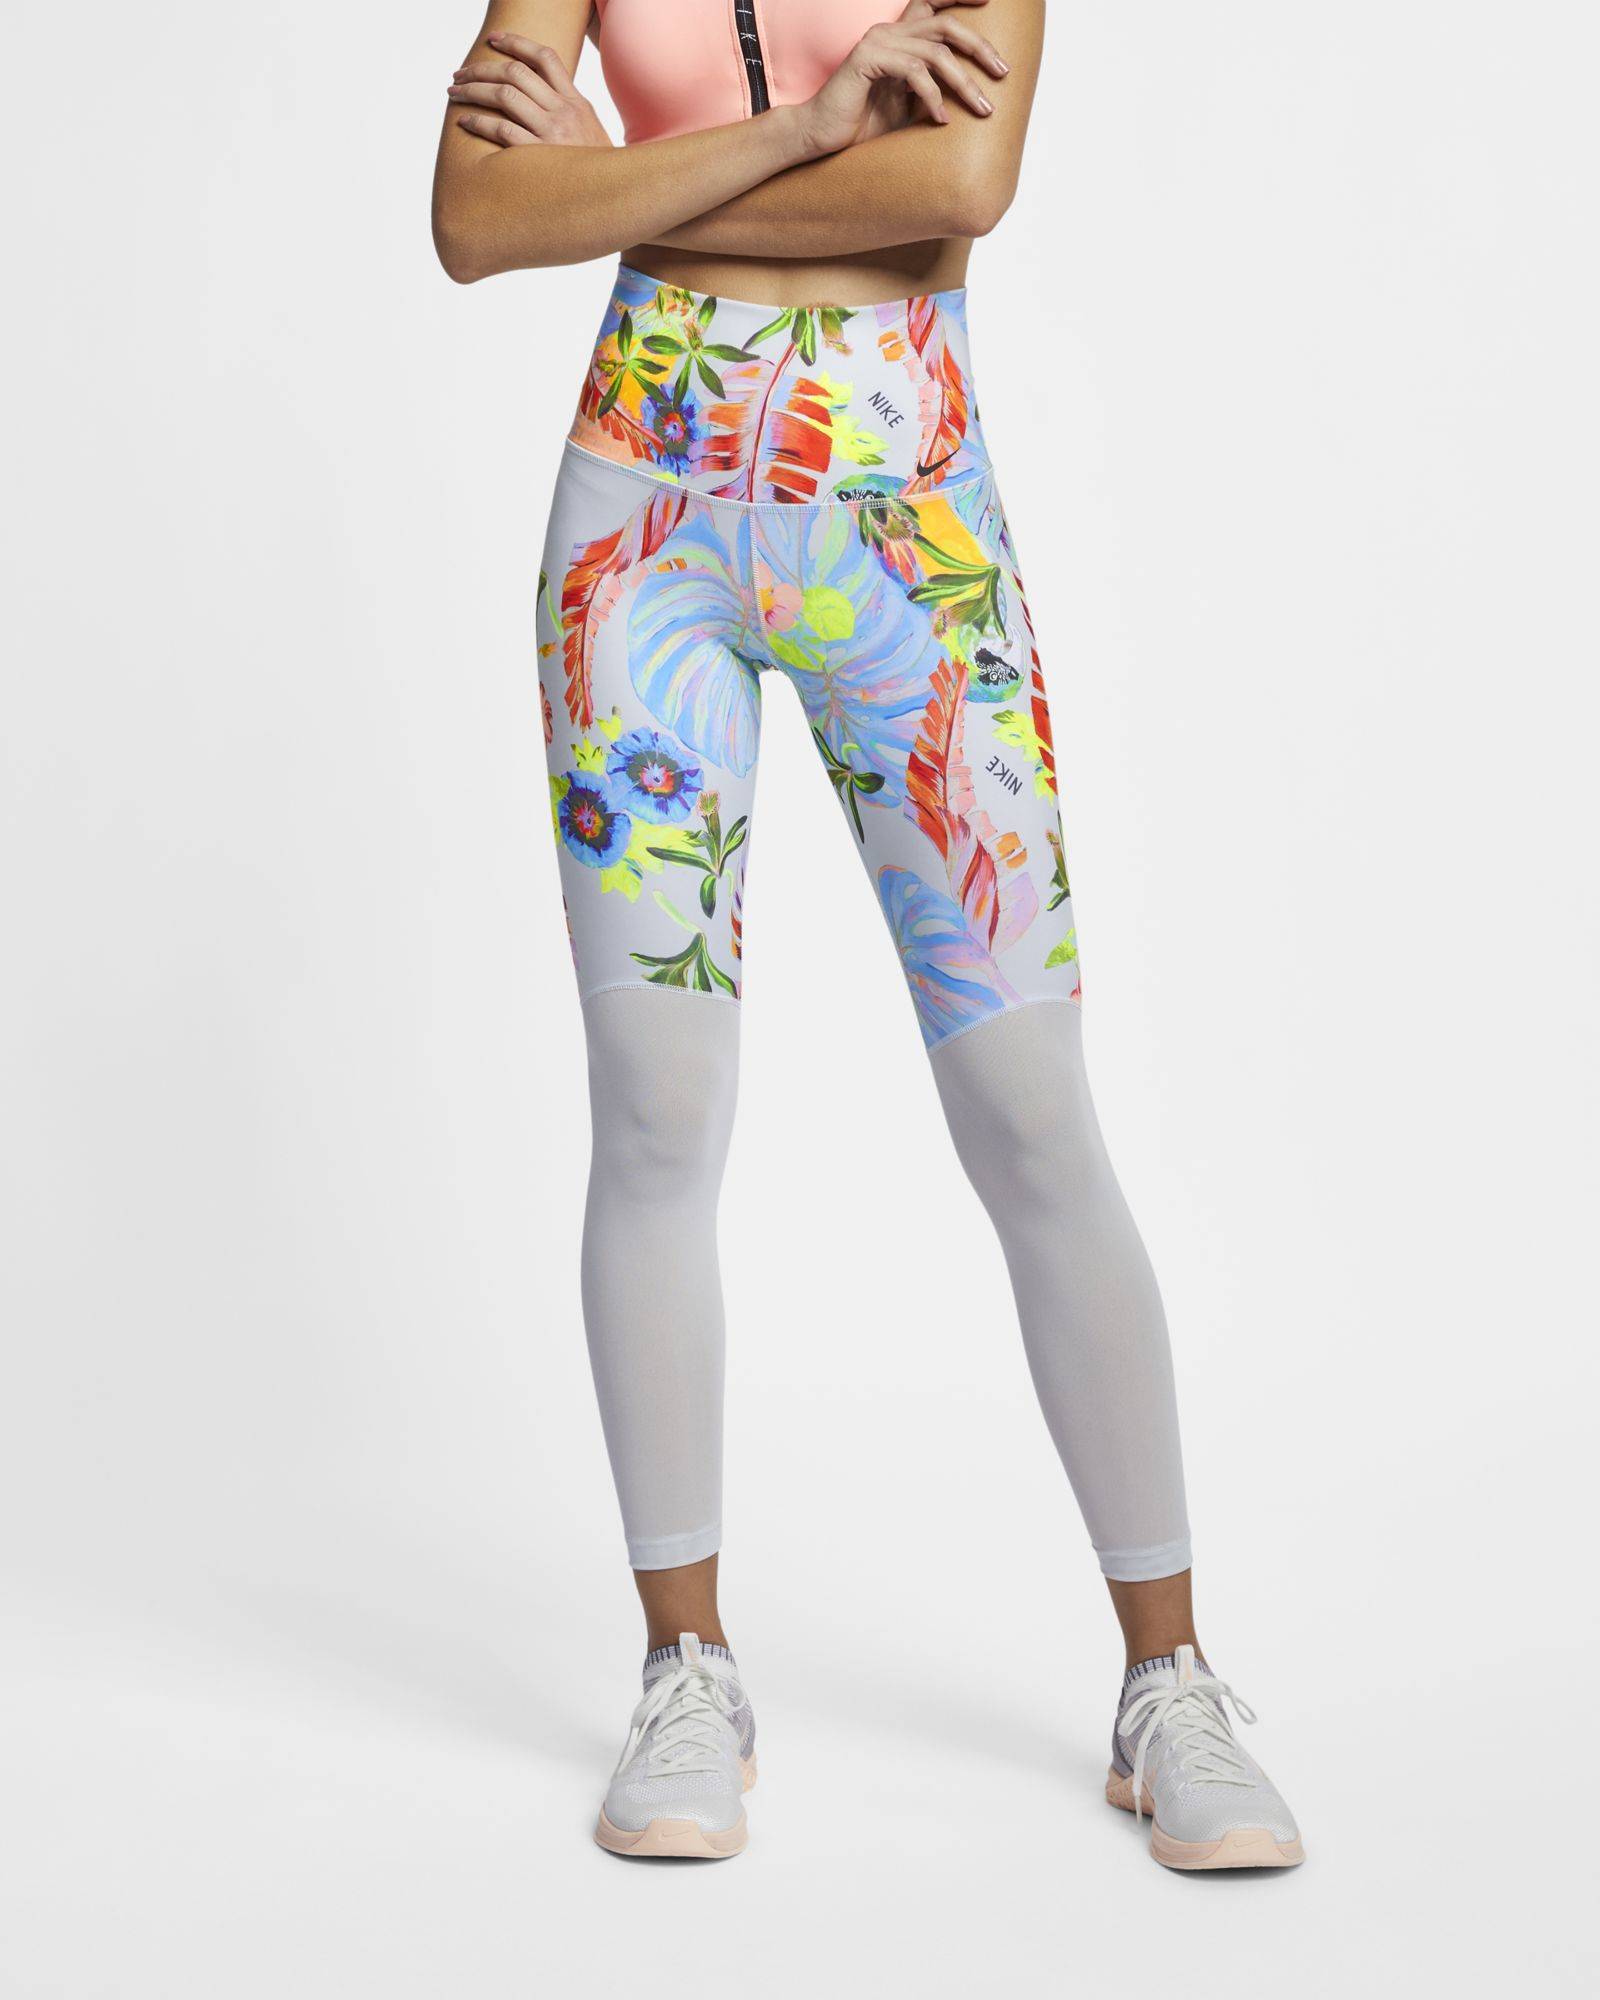 separation shoes 2762d 20a94 Nike Wmns Power 78 Training Hyper Femme Tights - SPORTING GOODS Sports  Pants - Superfanas.lt